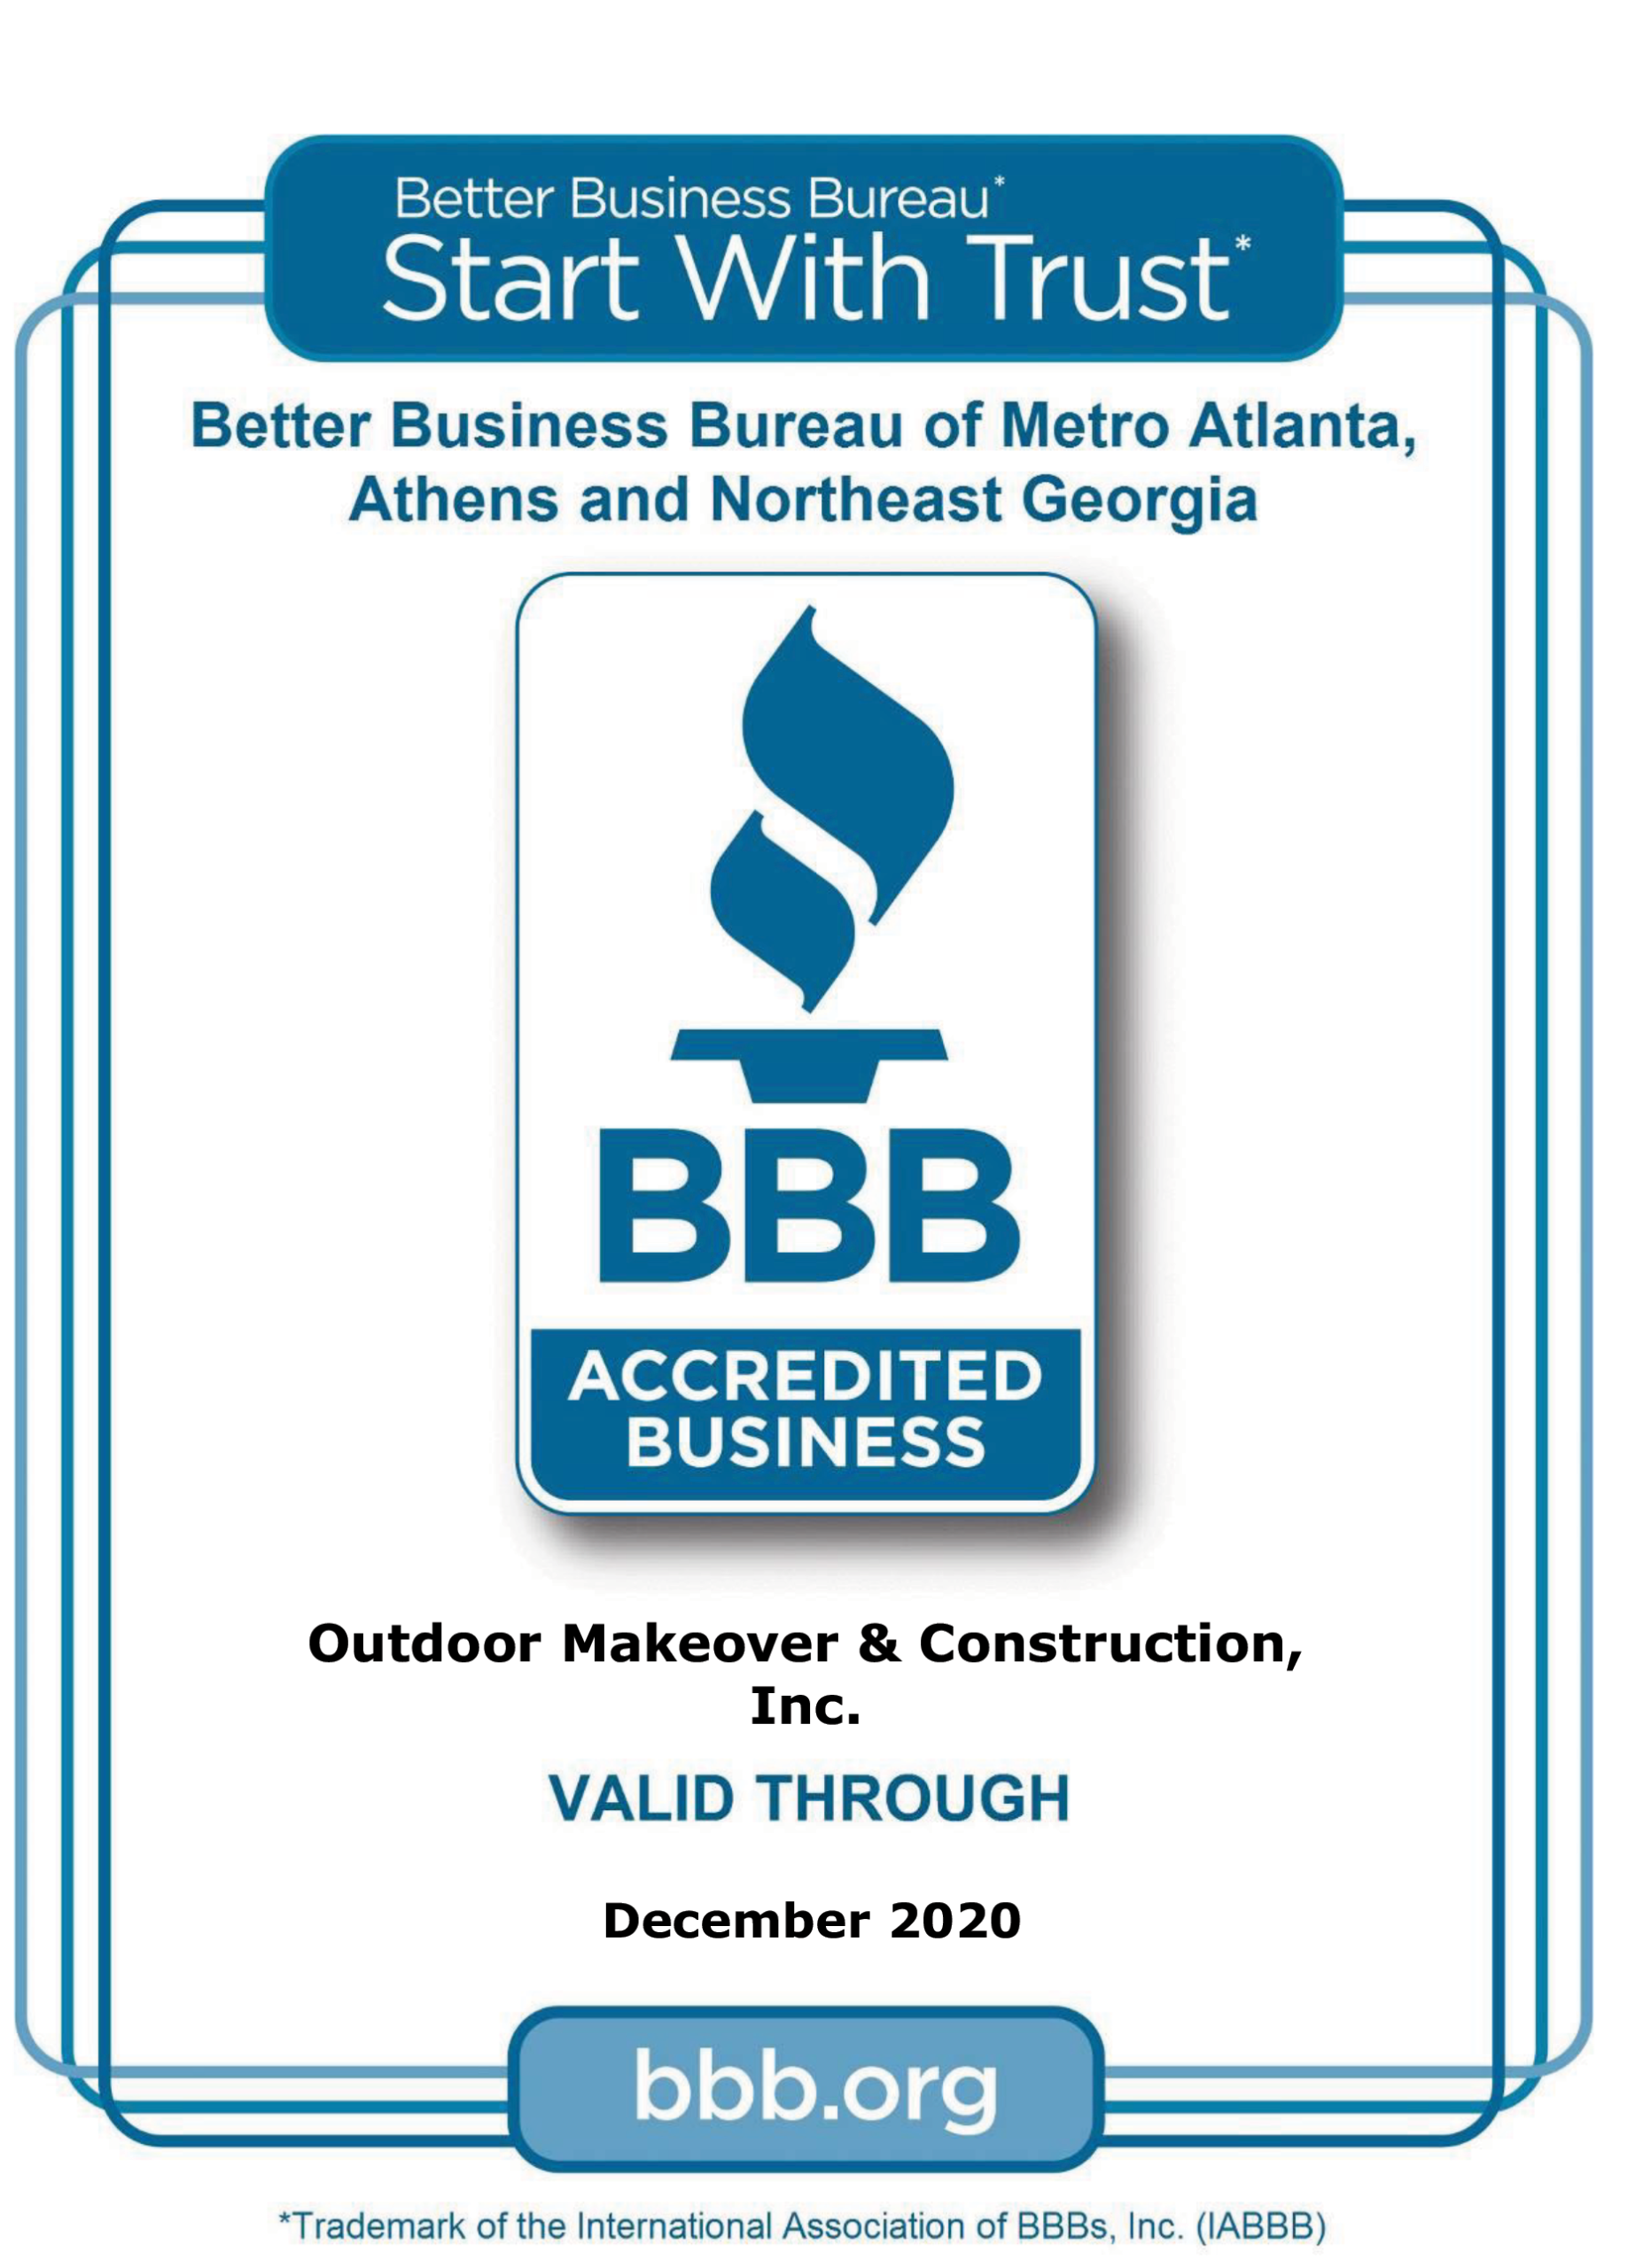 Better Business Bureau of Metro Atlanta - Accredited Business